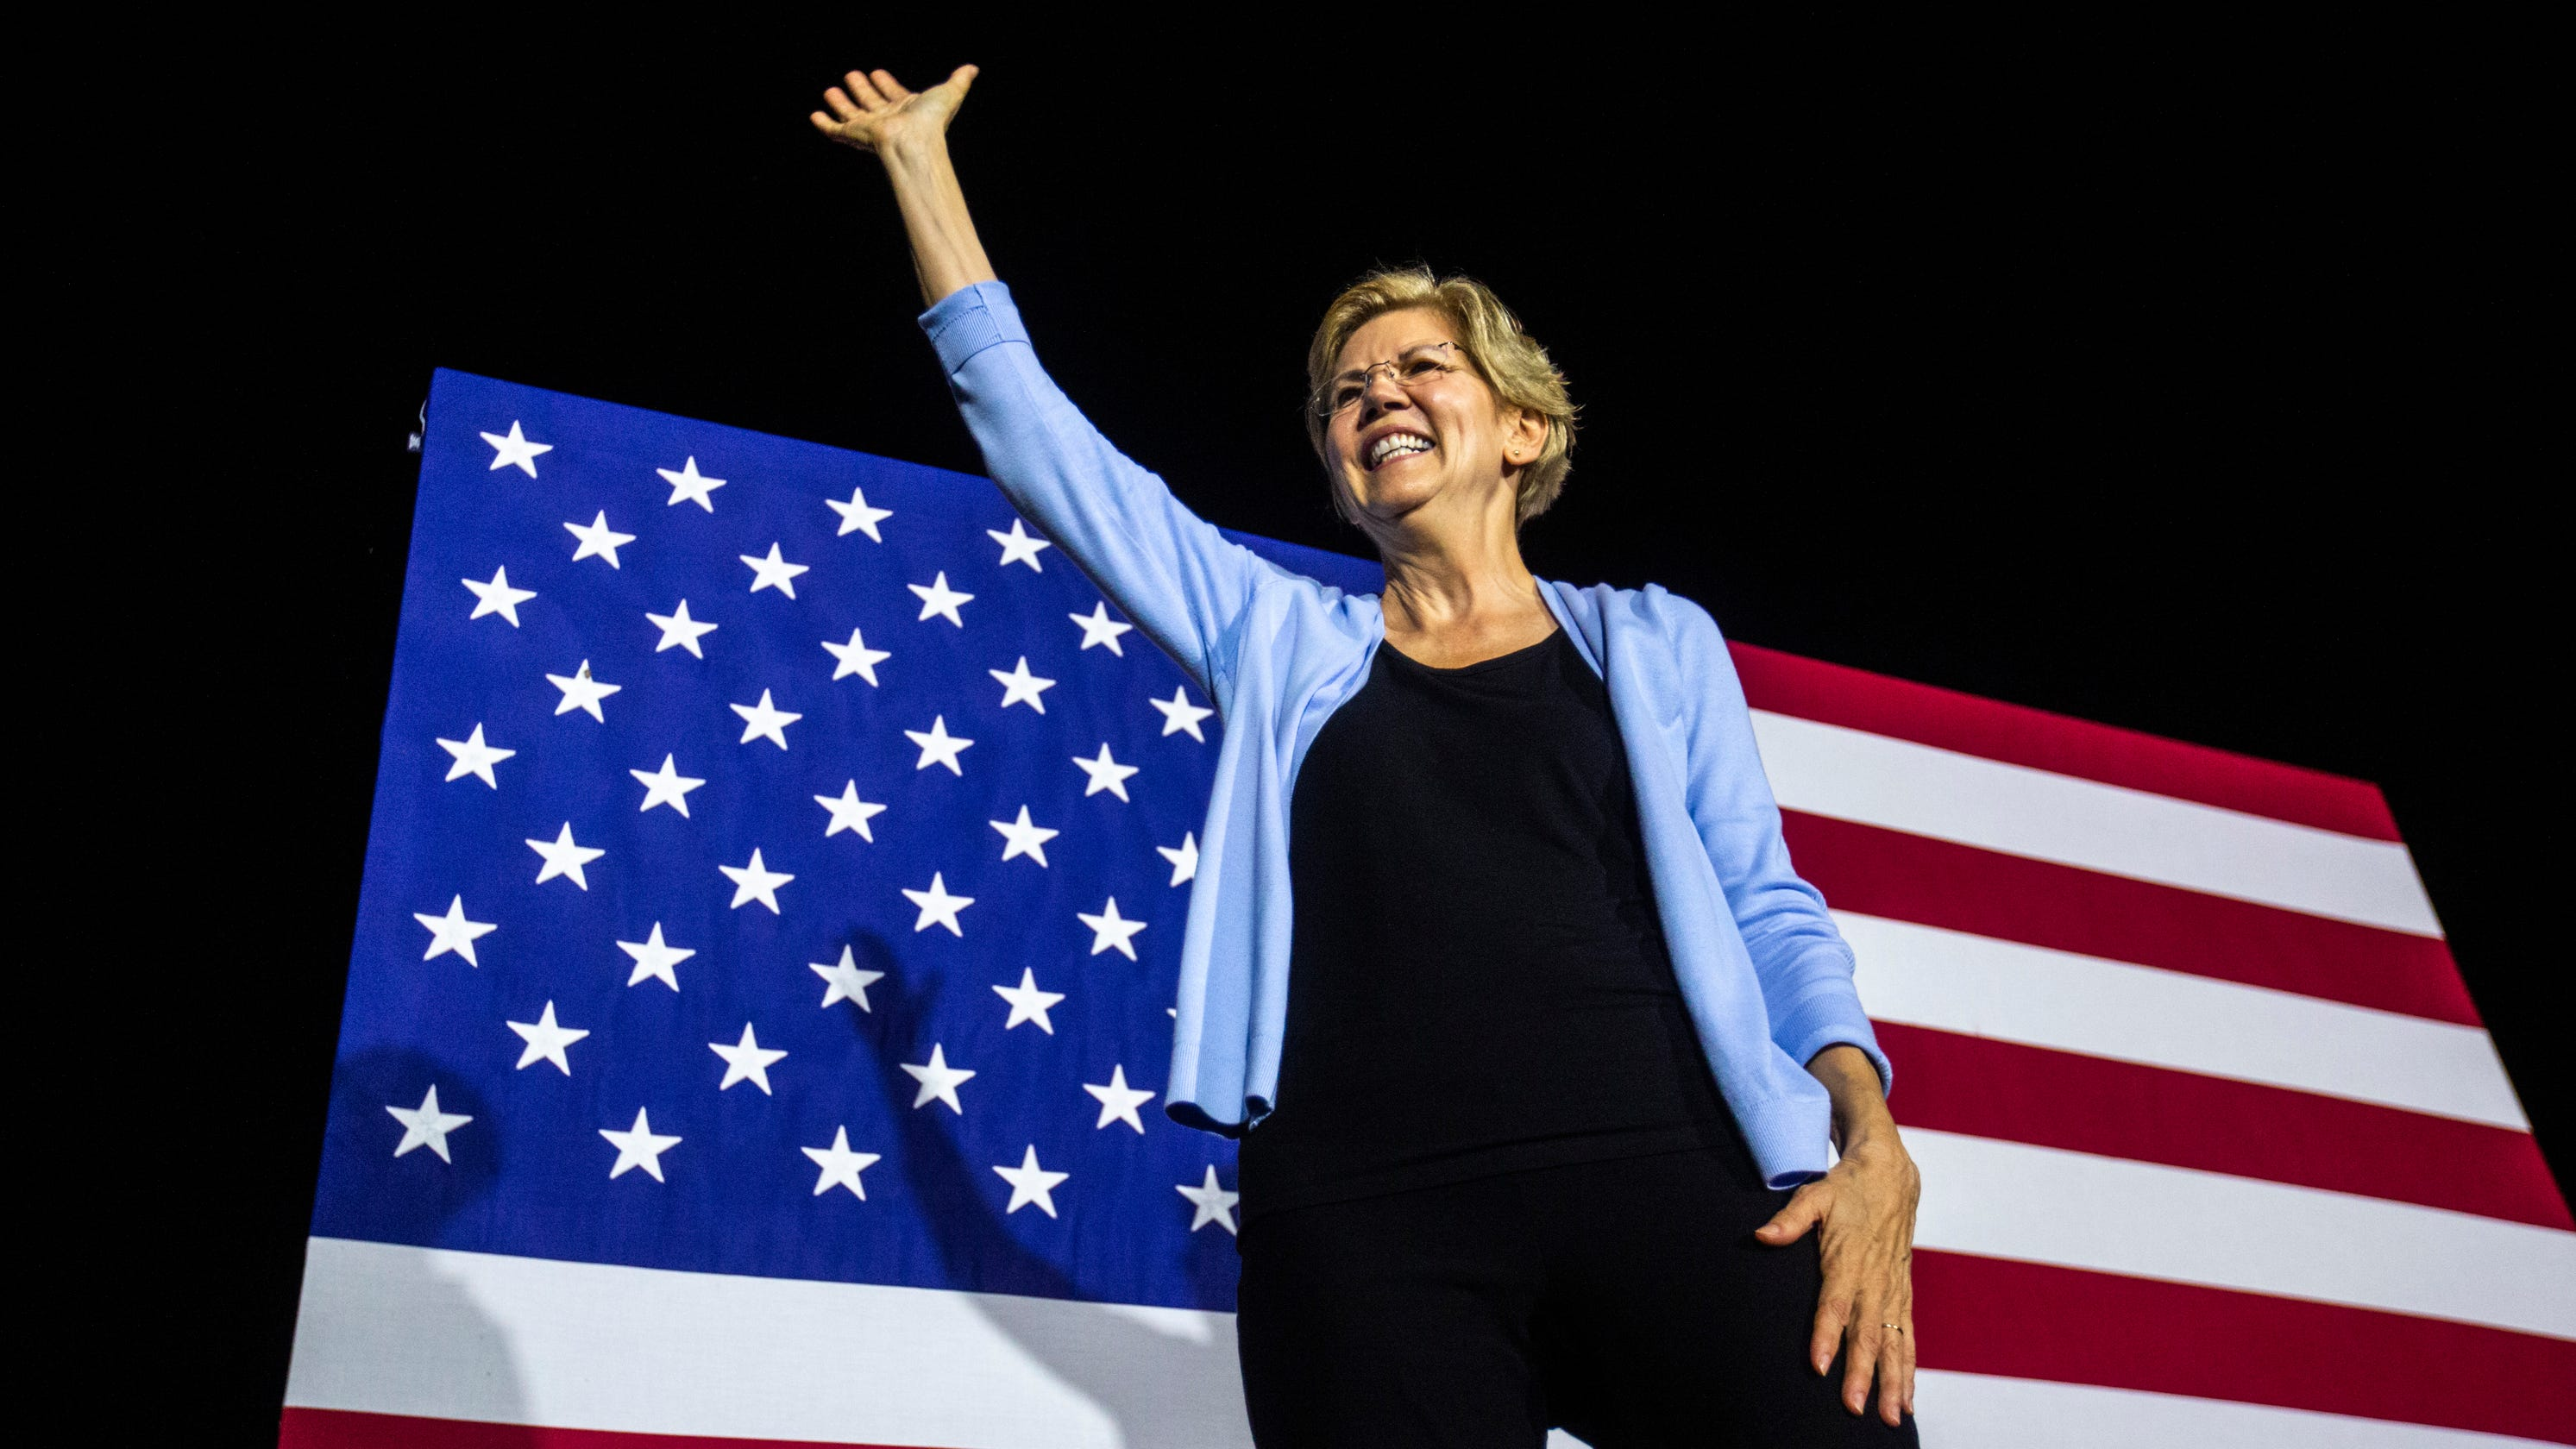 Elizabeth Warren leads Iowa Poll for the first time, besting Joe Biden and Bernie Sanders